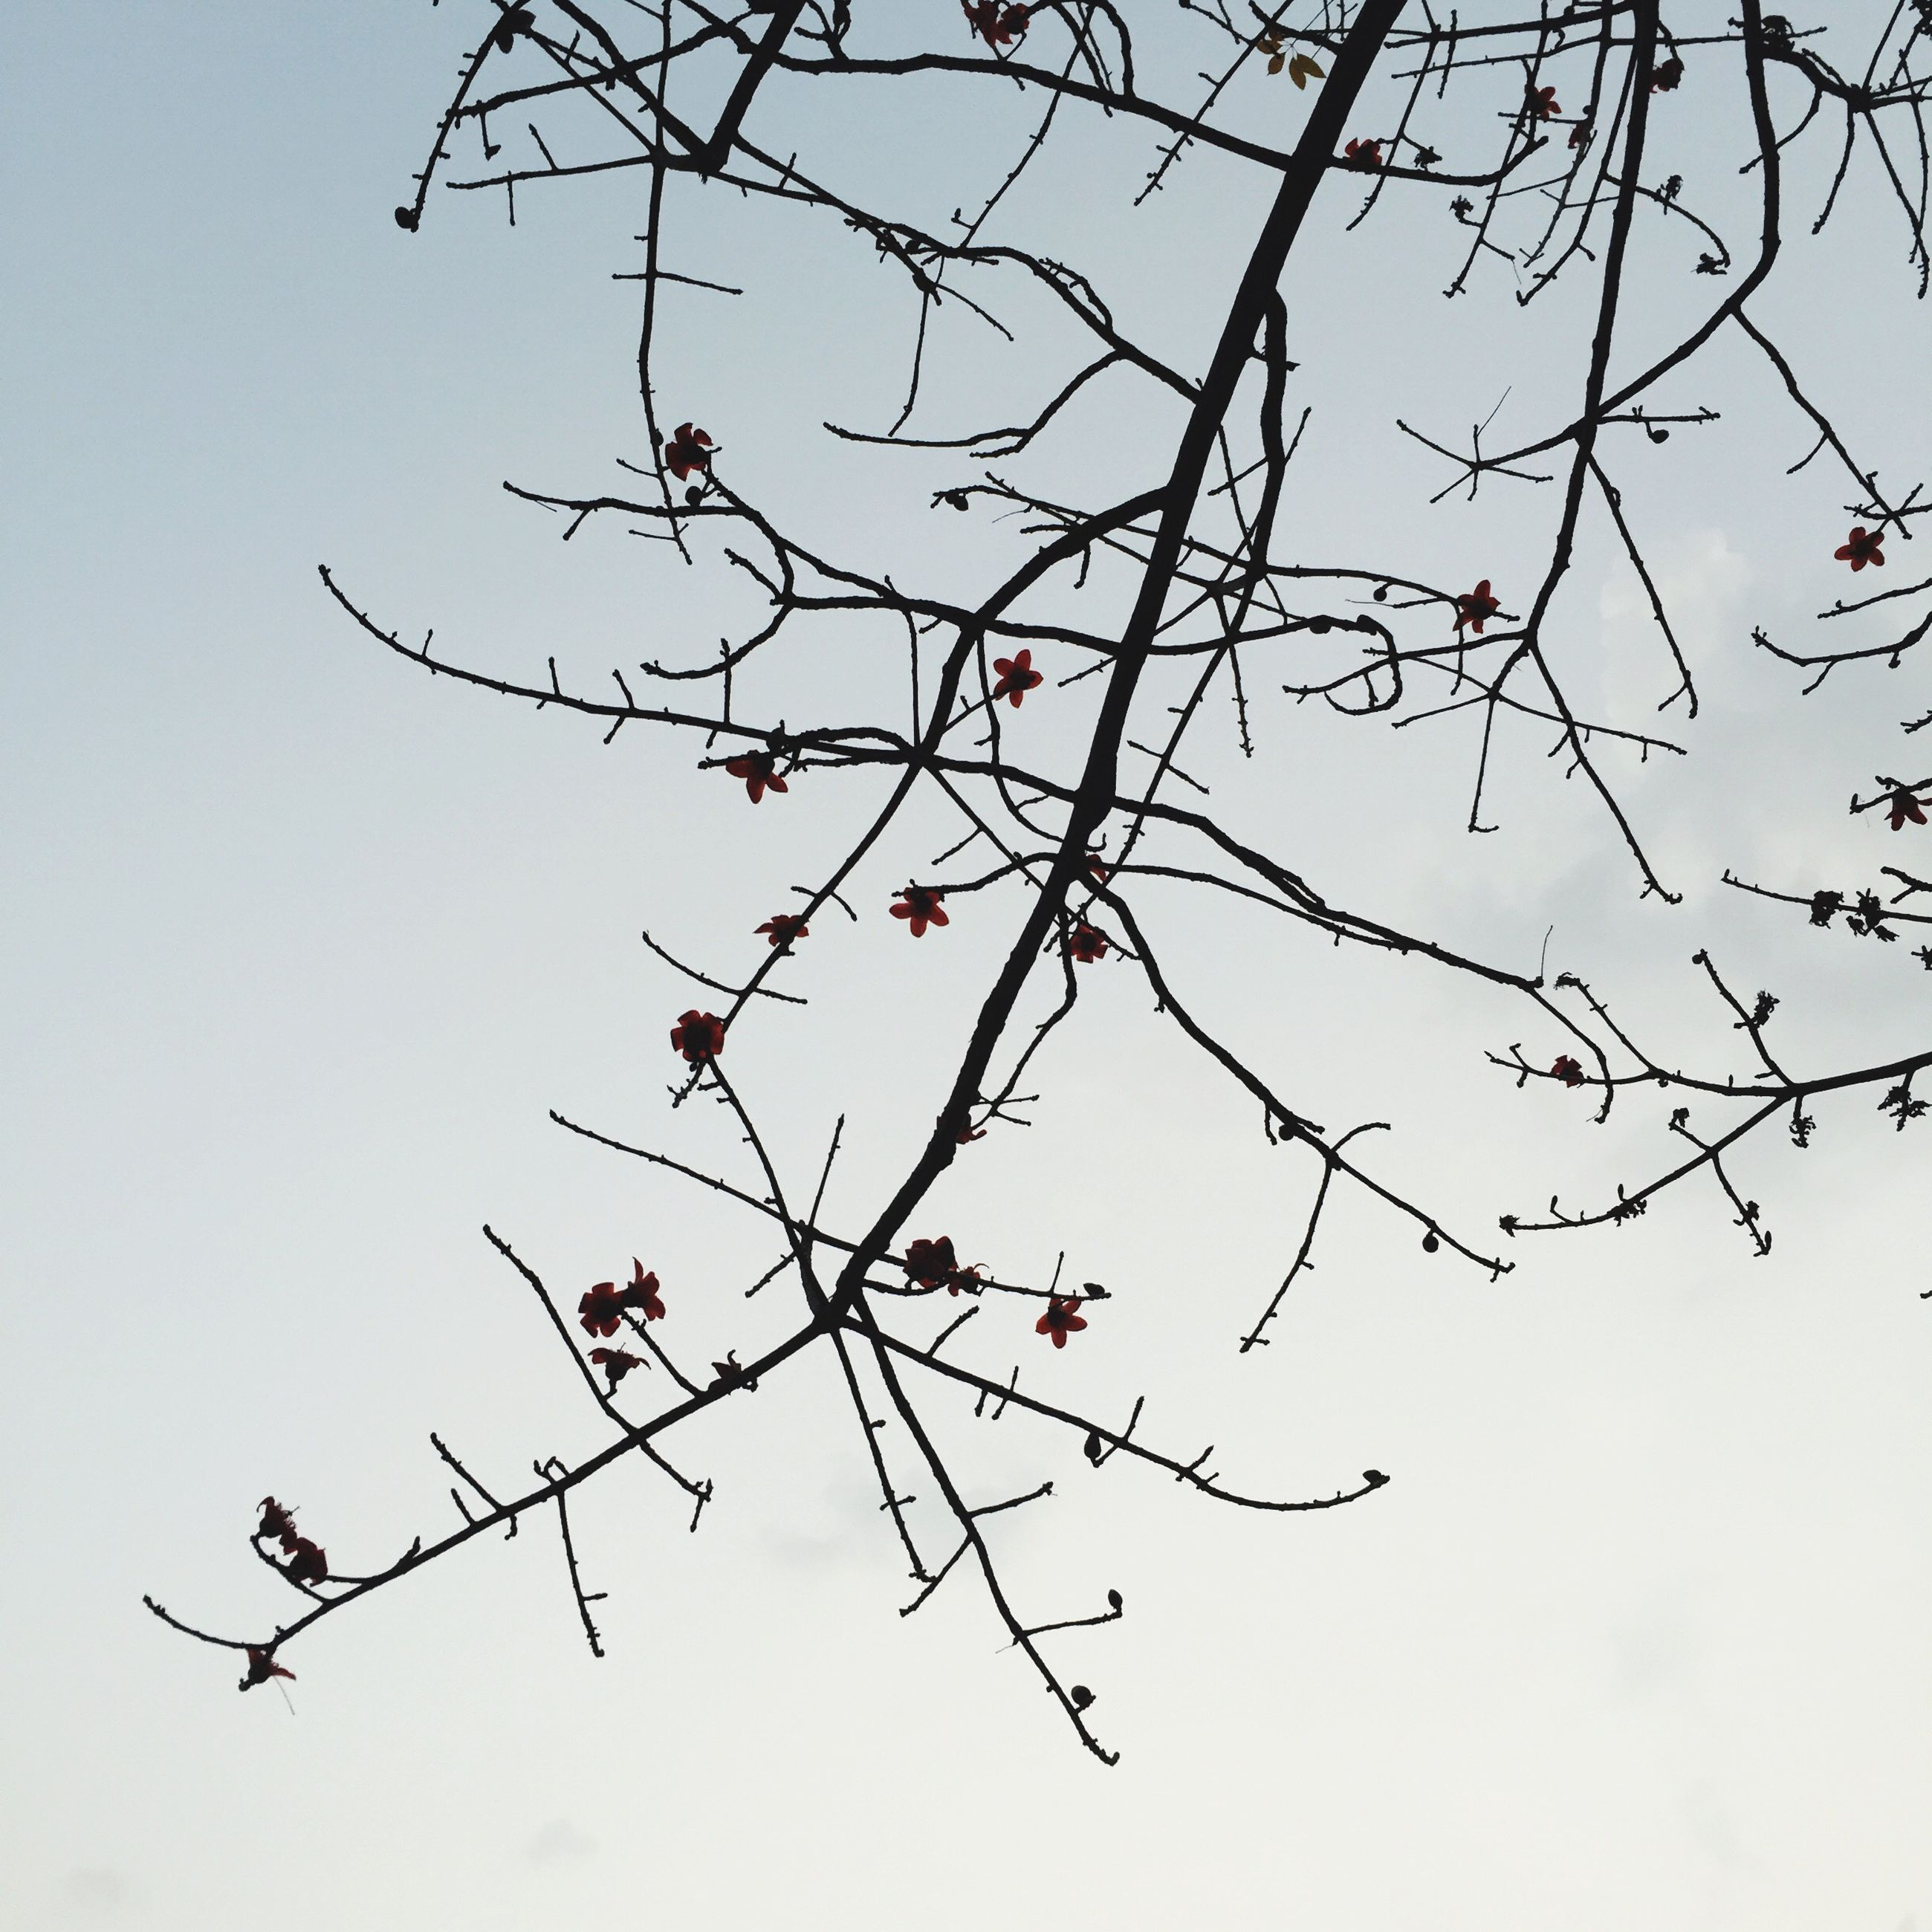 branch, low angle view, bare tree, tree, clear sky, sky, nature, twig, silhouette, growth, beauty in nature, tranquility, outdoors, no people, day, bird, leaf, scenics, high section, blue